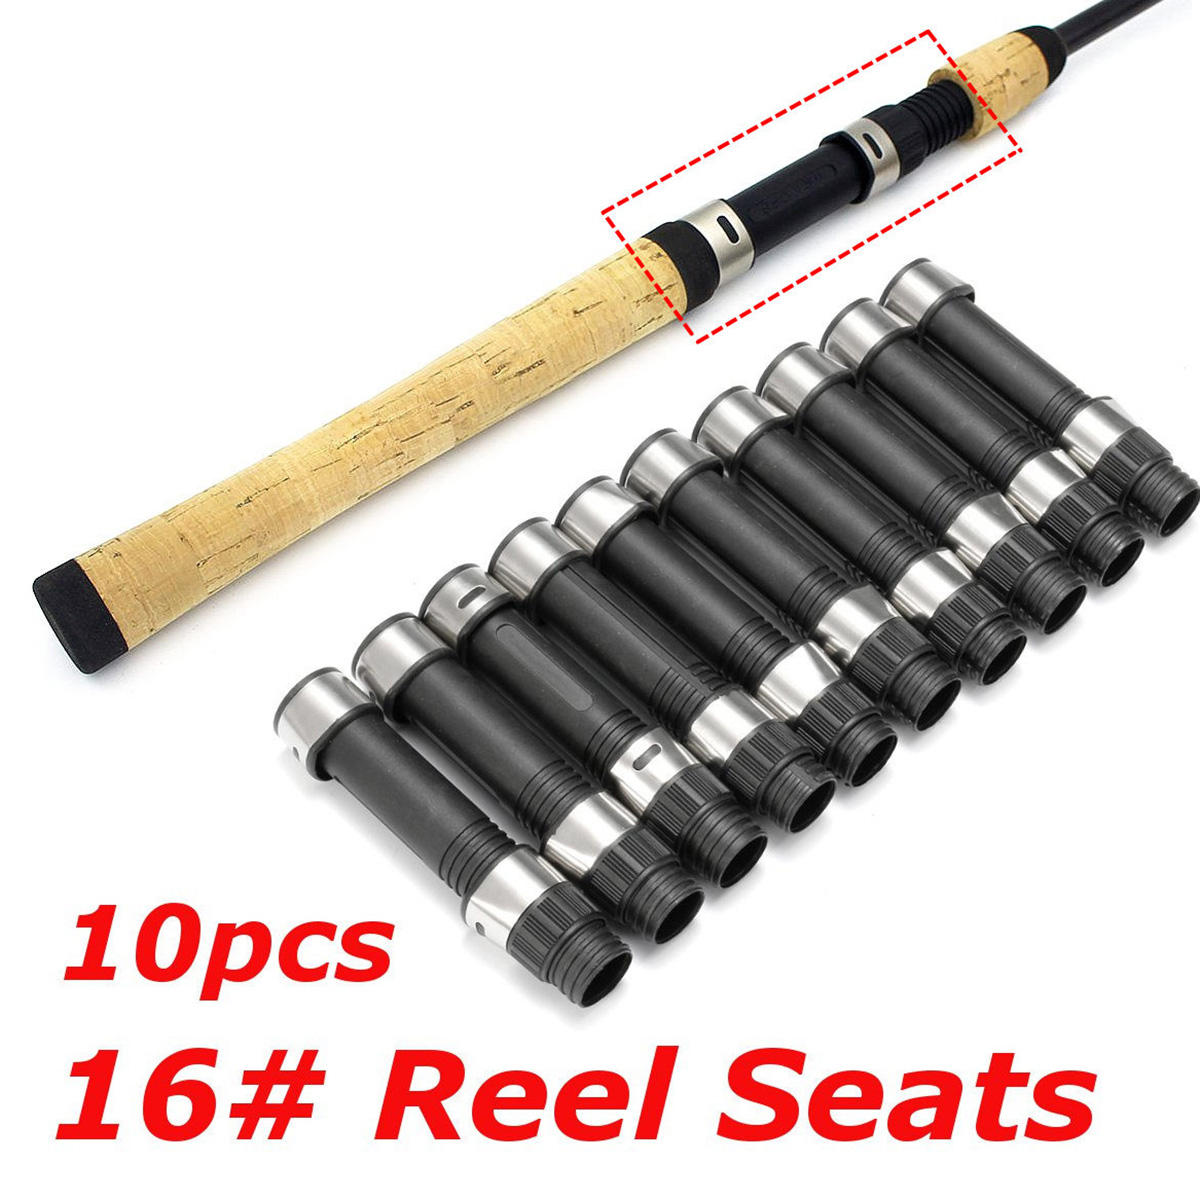 ZANLURE Lot 10 Pcs DPS Style 16# Reel Seat Spinning Fishing Rod Building and Repair High Quality